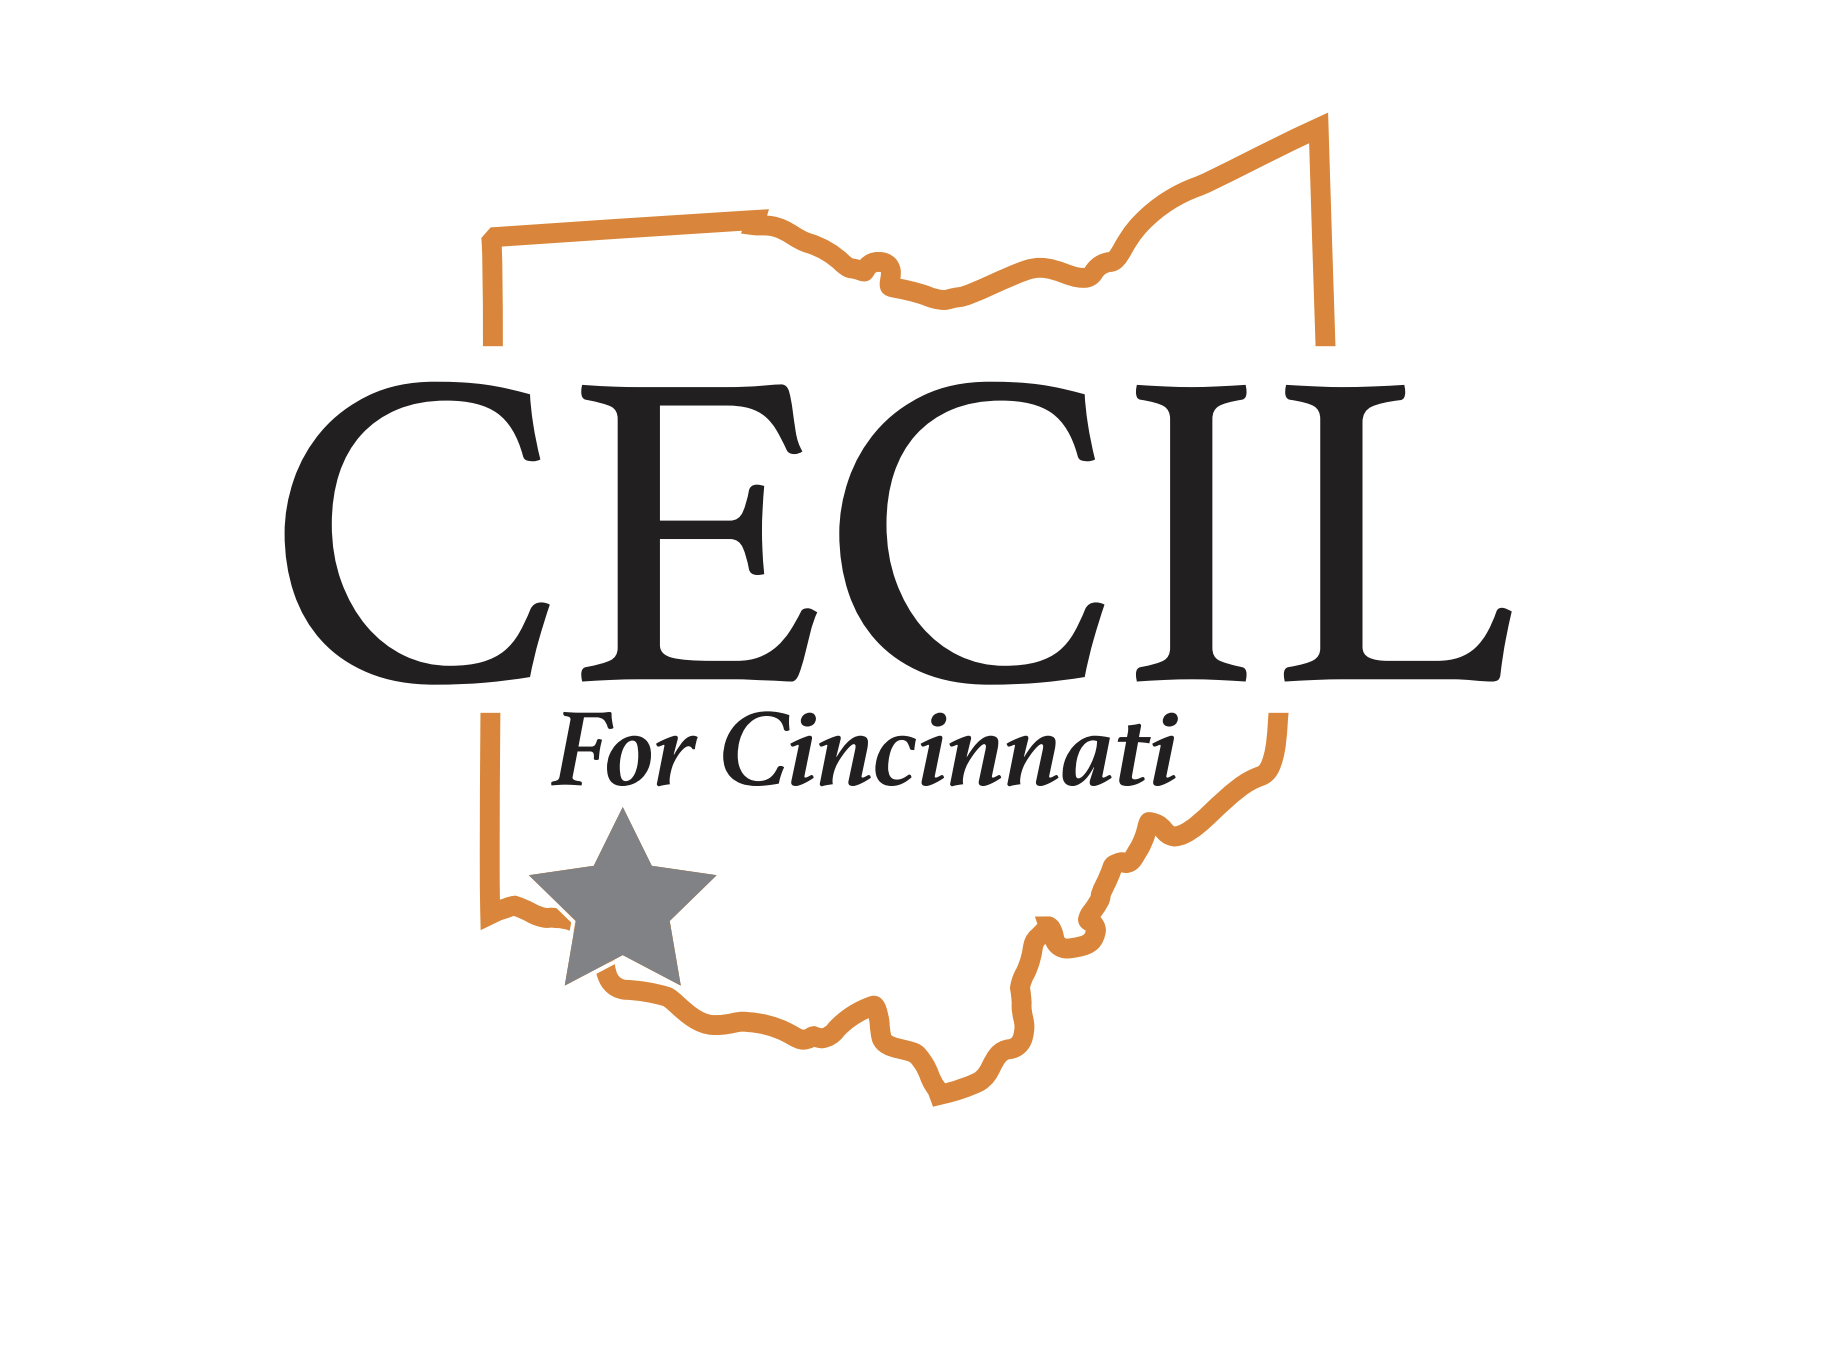 logo for Cecil Thomas running for Mayor